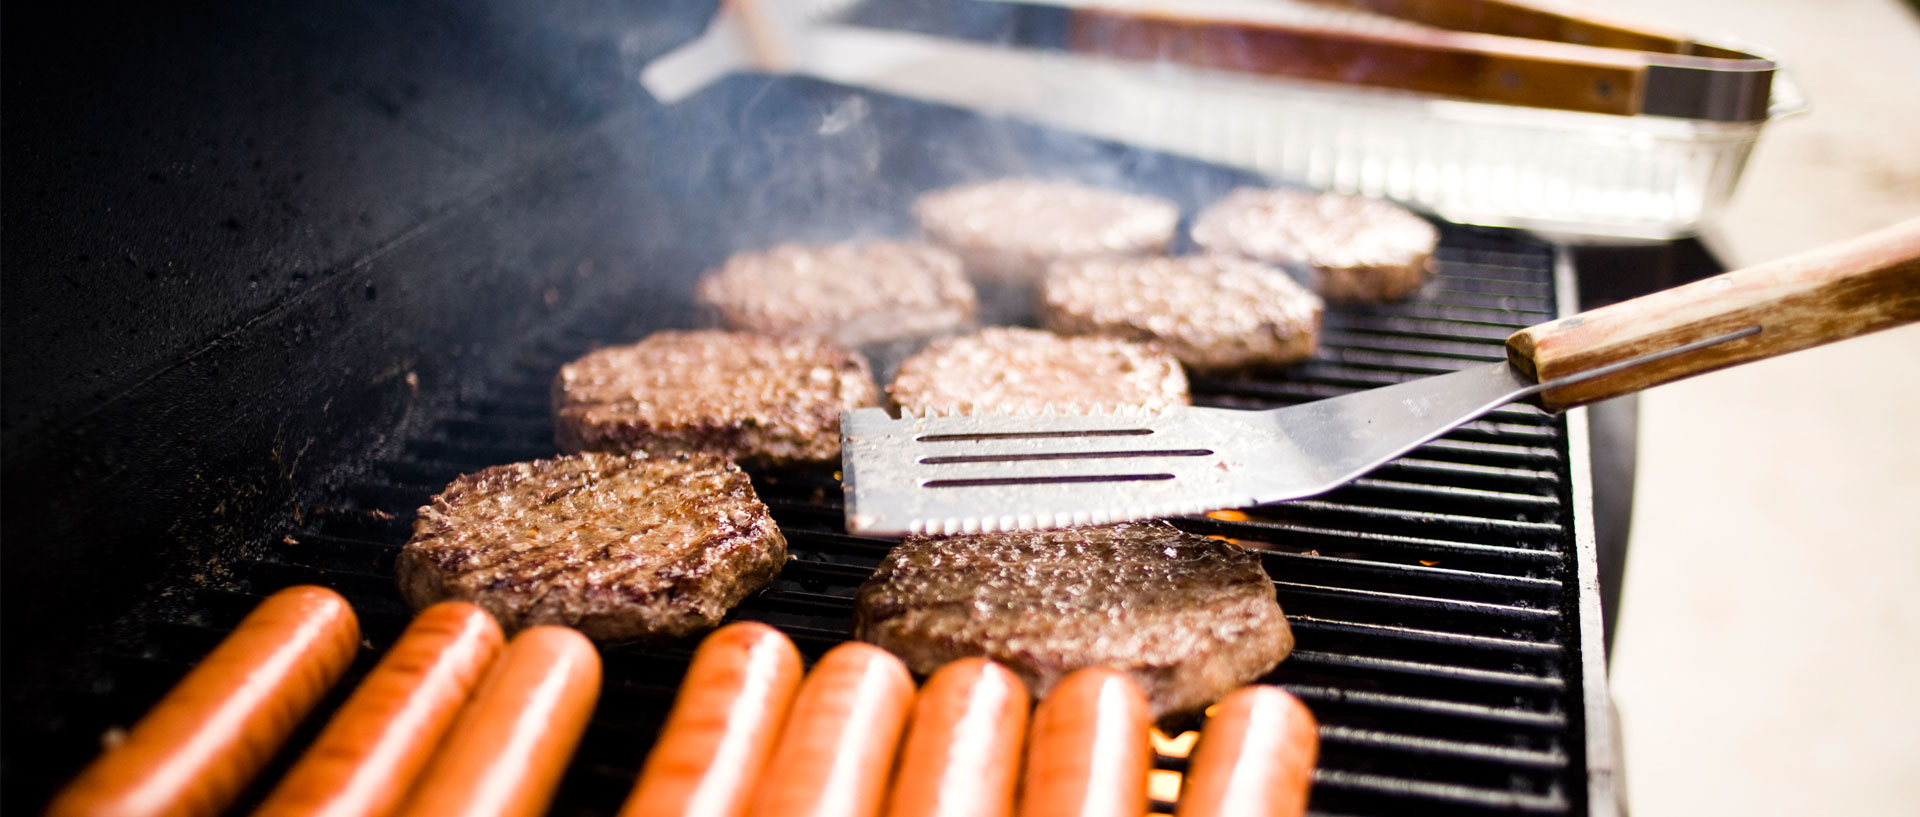 Most Reliable Gas Grill Brands